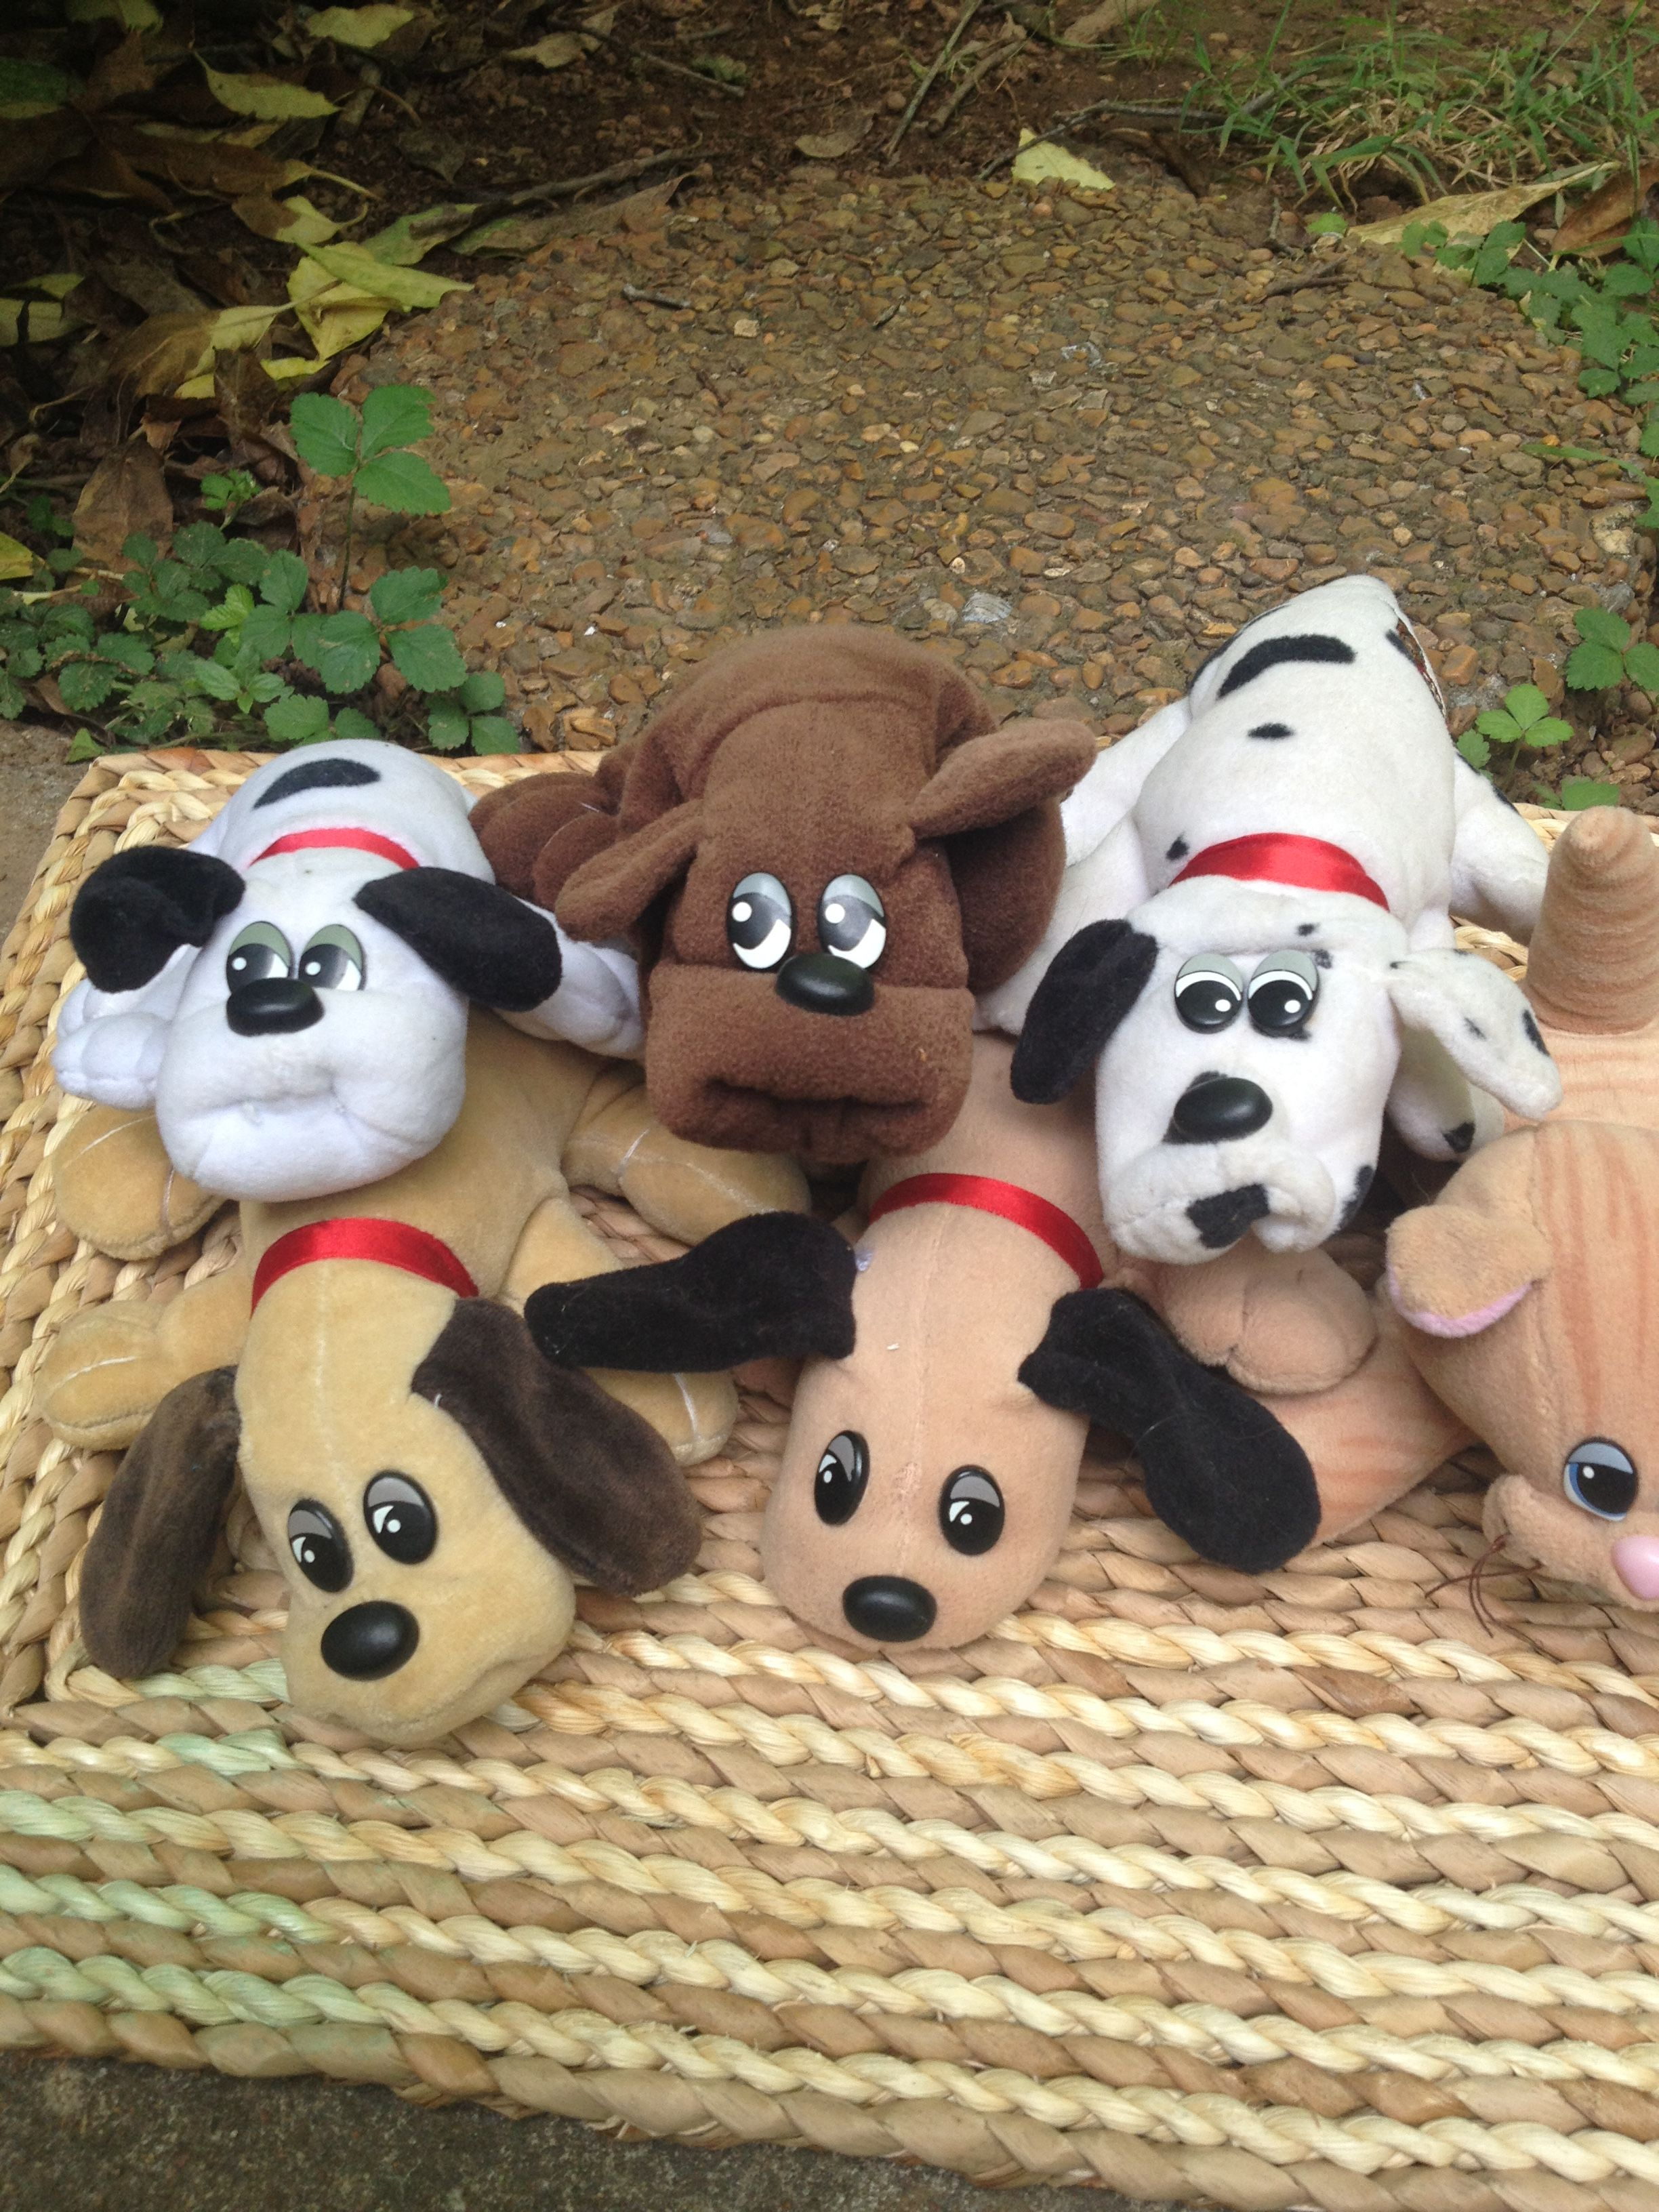 80s 90s Pound Puppies Replacement Loveys Pinterest